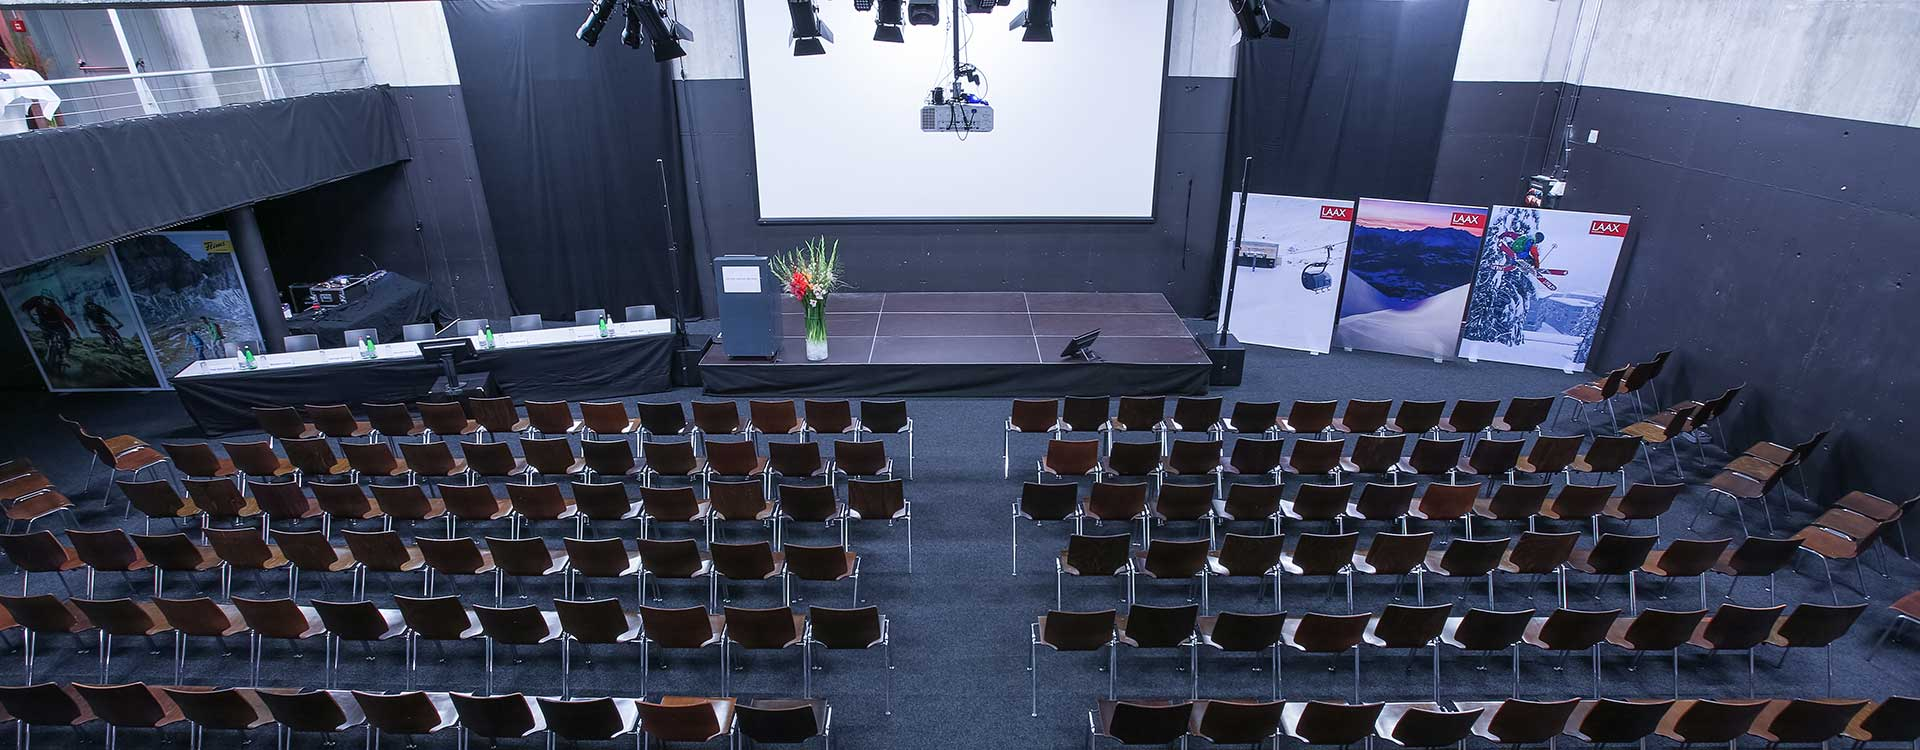 Eventhalle, Workshop, Tagungsraum und Kongressraum in Flims.